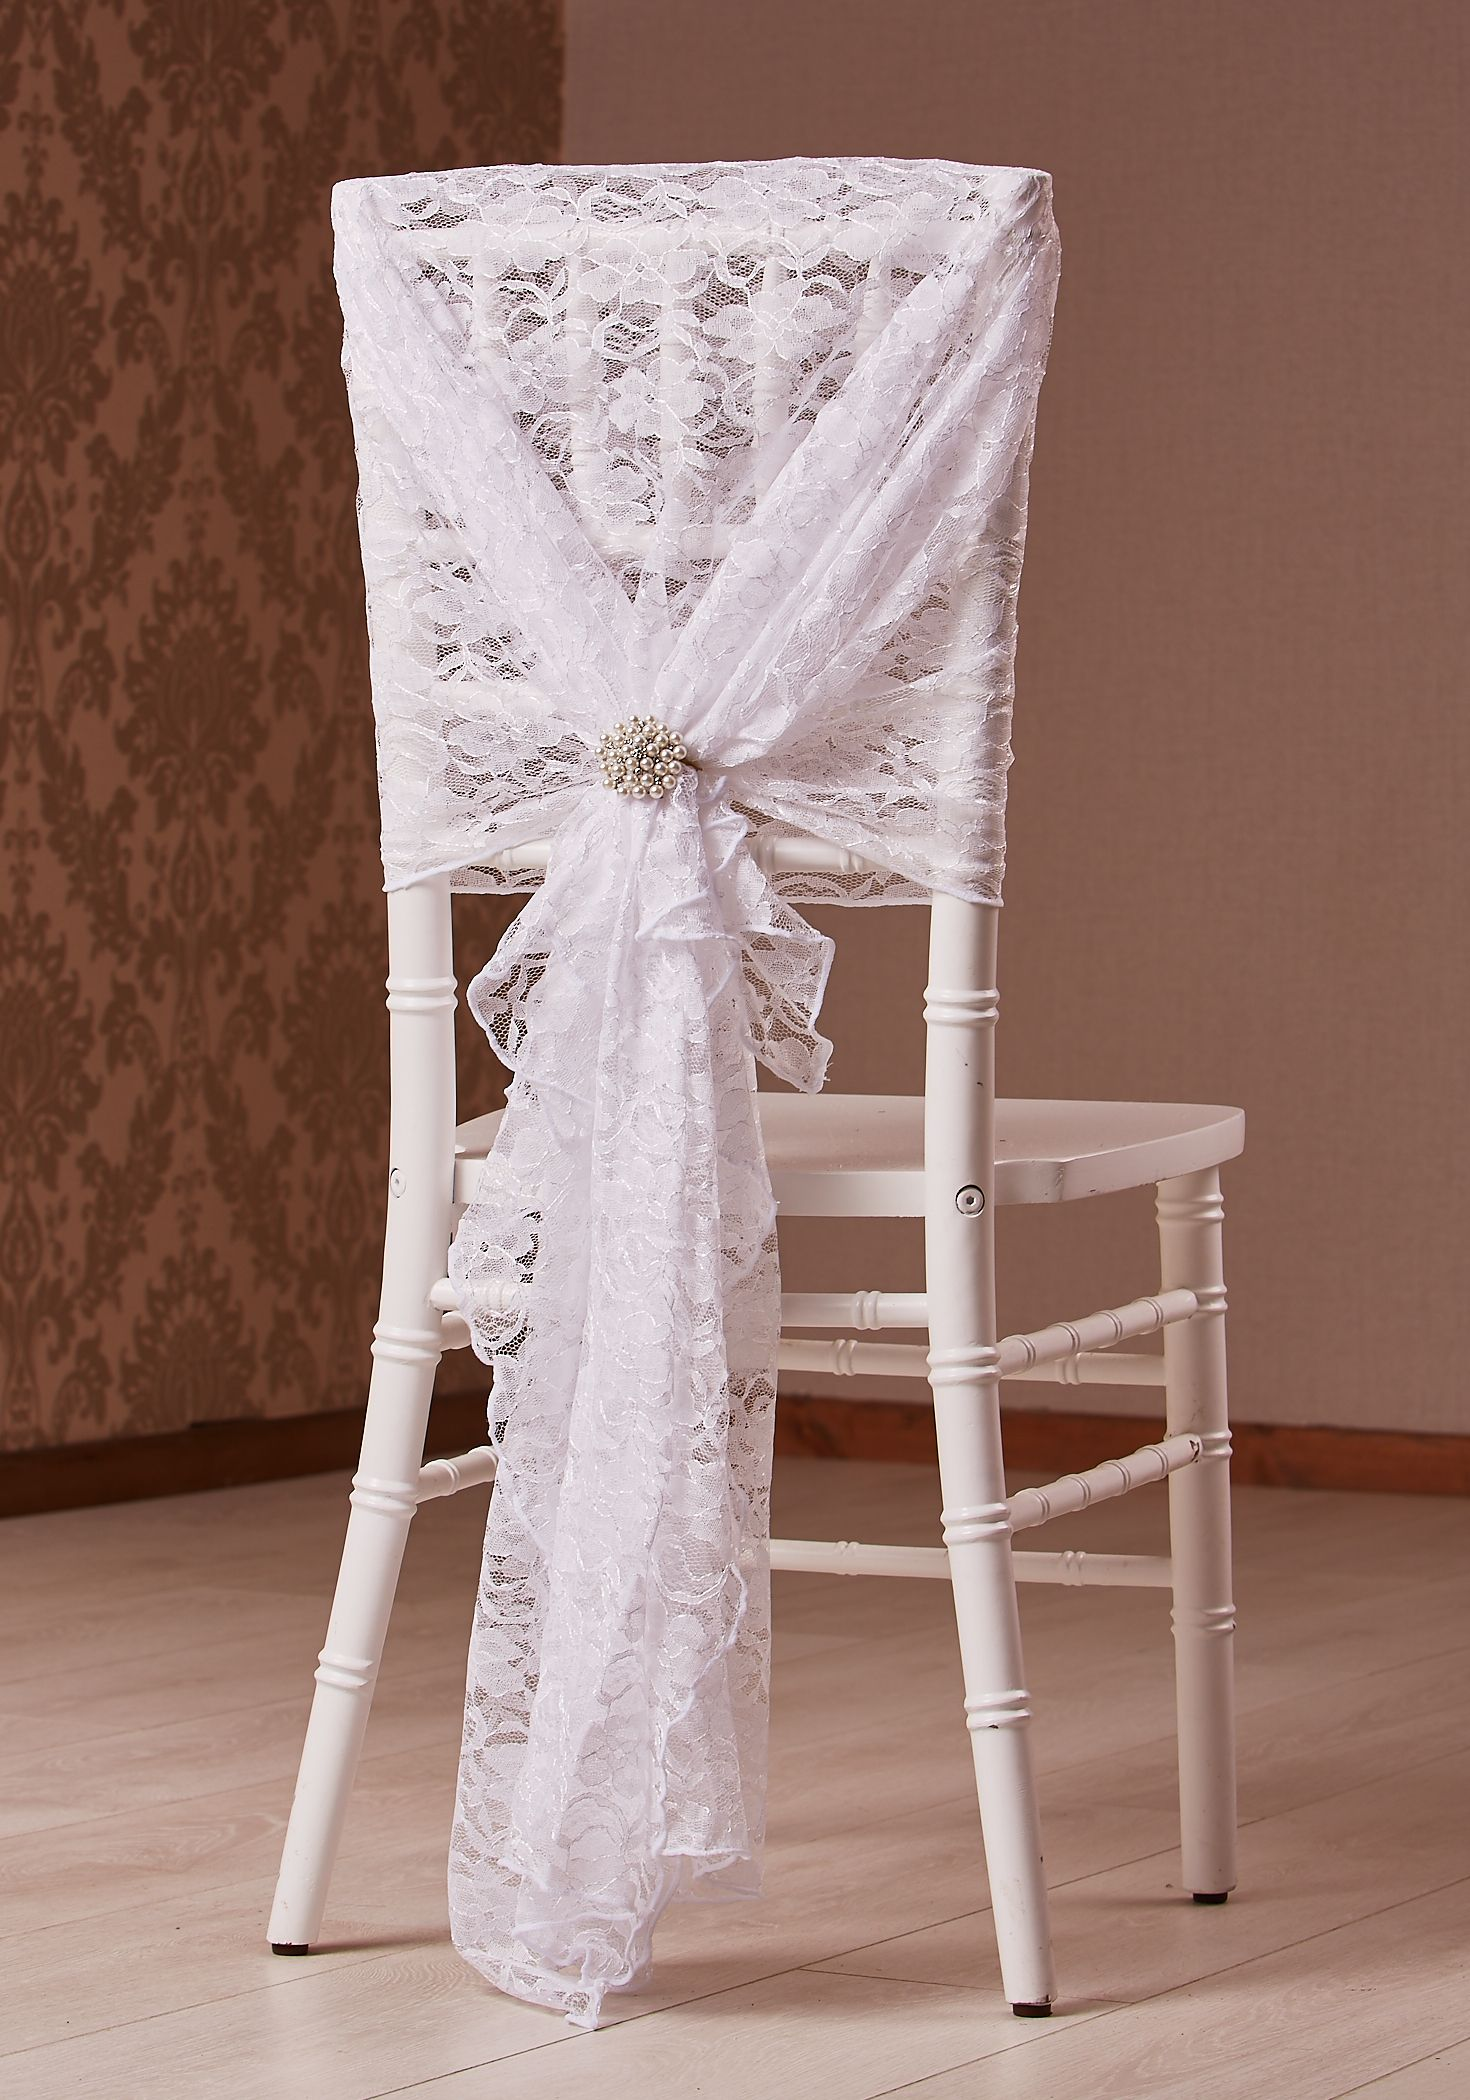 CHIAVARI CHAIR WHITE LACE HOOD WITH BROOCH STYLING BY FLEUR